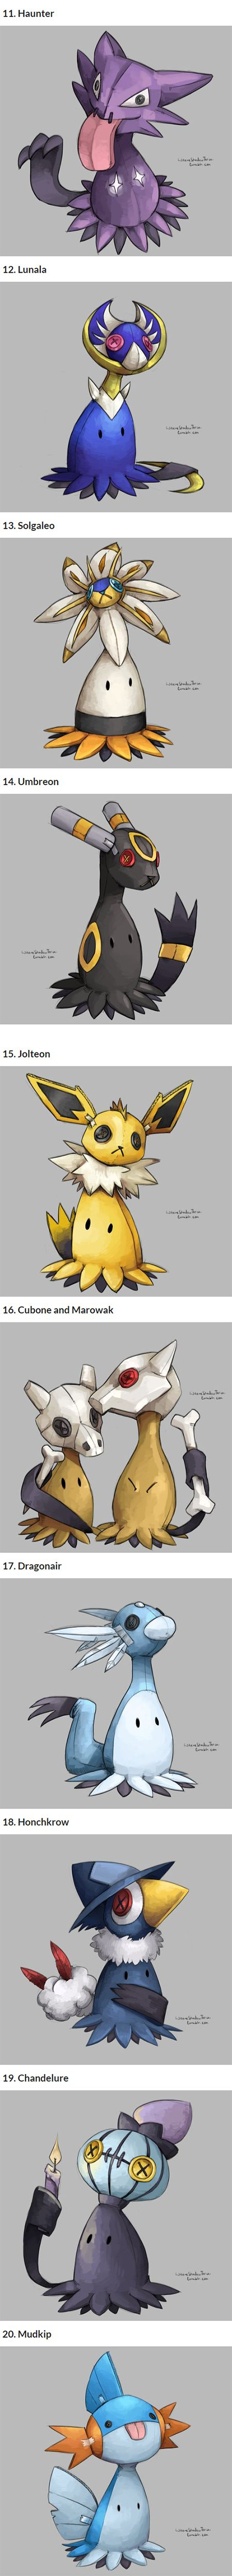 Part 1: http://pokemonmeme.com/image/297/mimikyu-variants-part-1